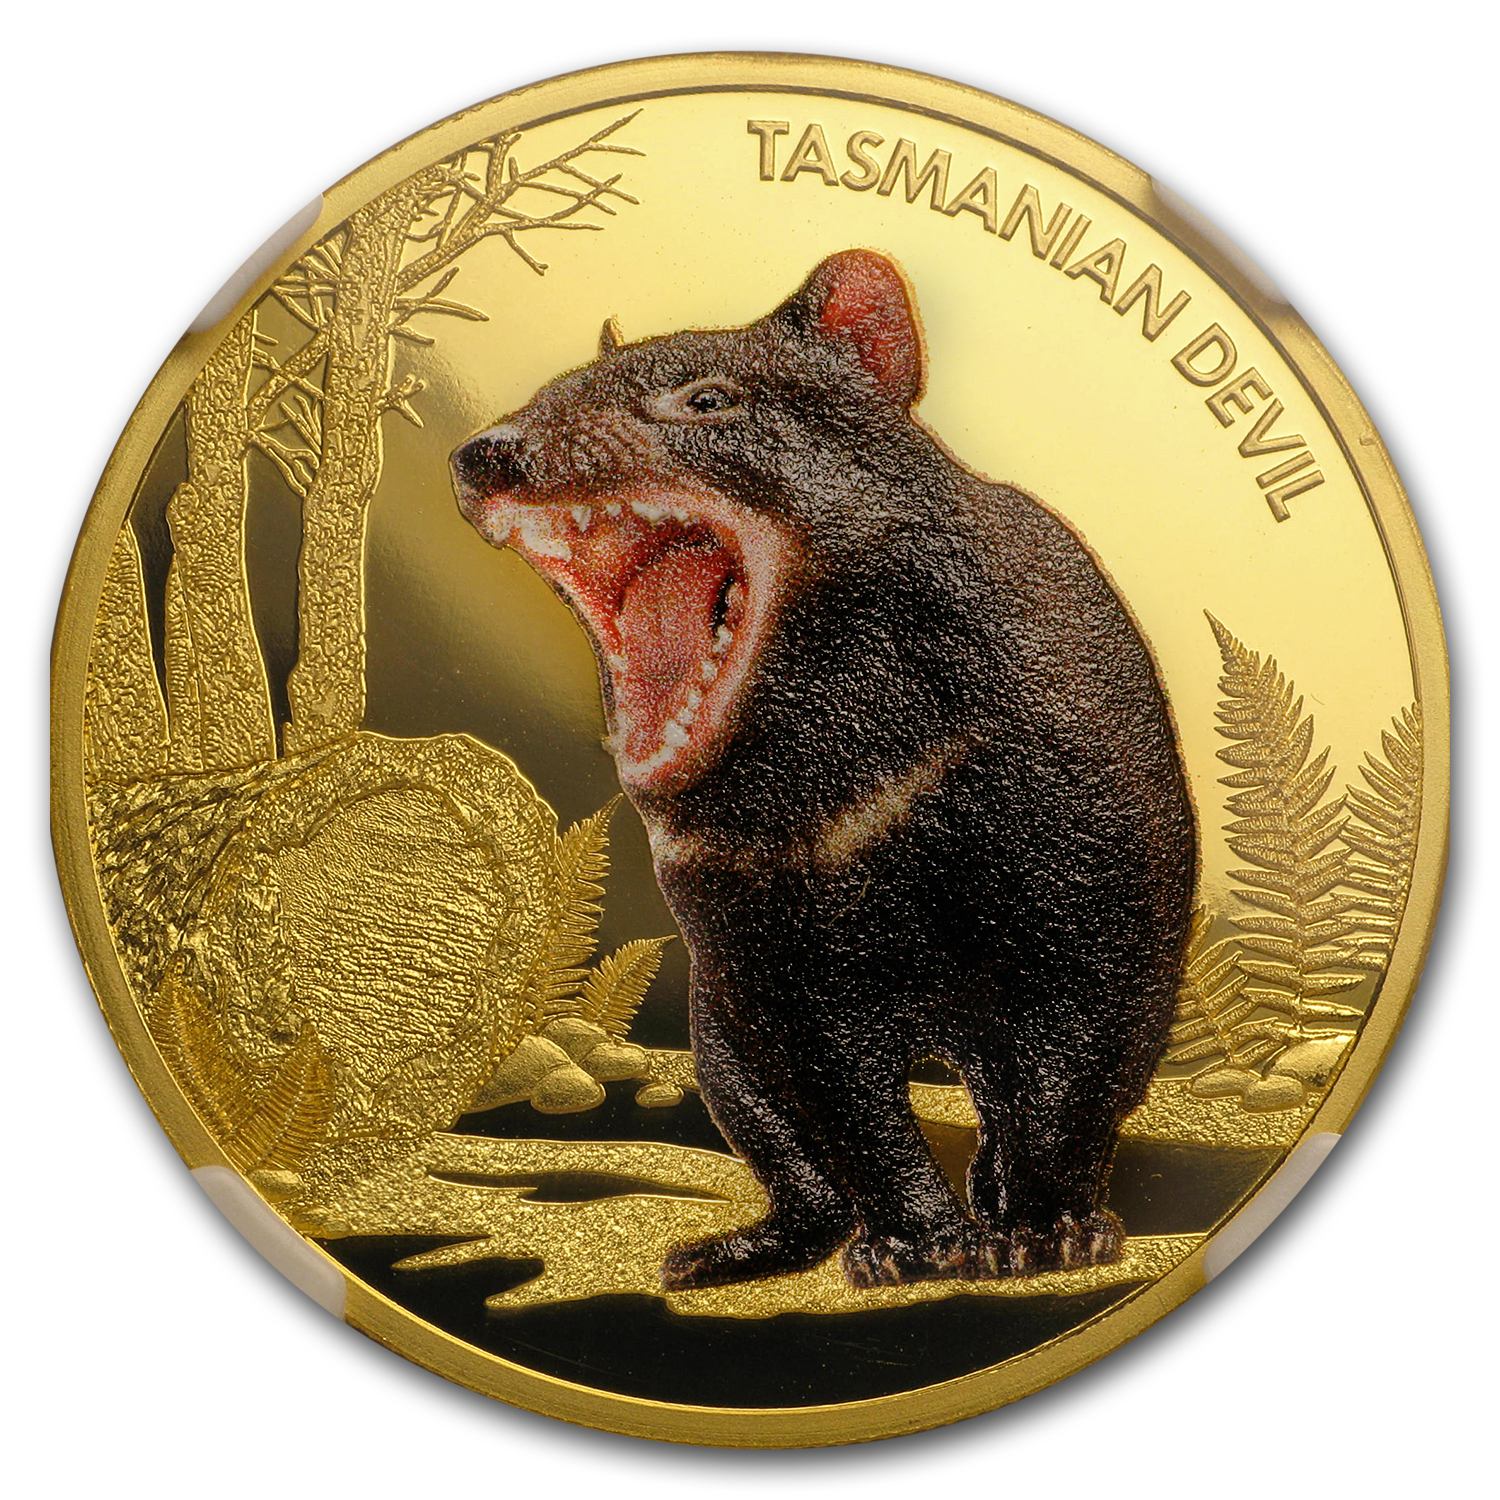 2013 Niue 1 oz Proof Gold Tasmanian Devil PF-69 NGC